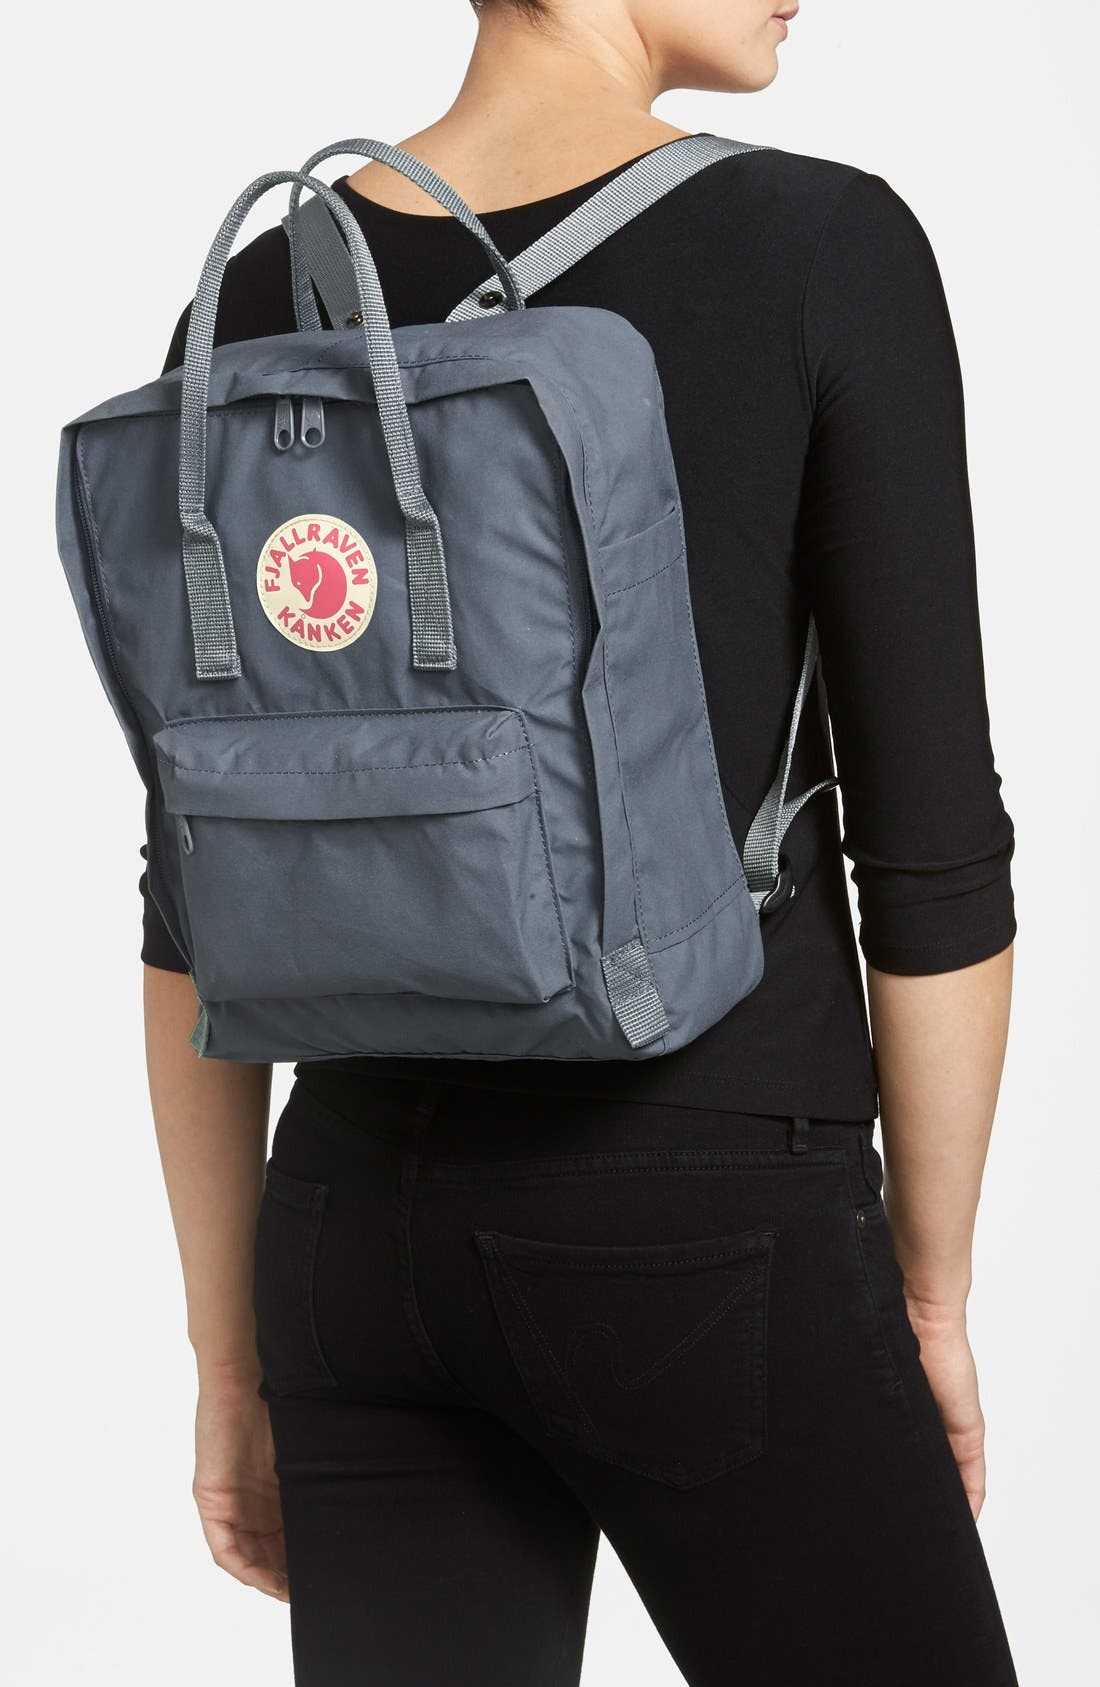 FJÄLLRÄVEN,                             Kånken Water Resistant Backpack,                             Alternate thumbnail 8, color,                             GRAPHITE